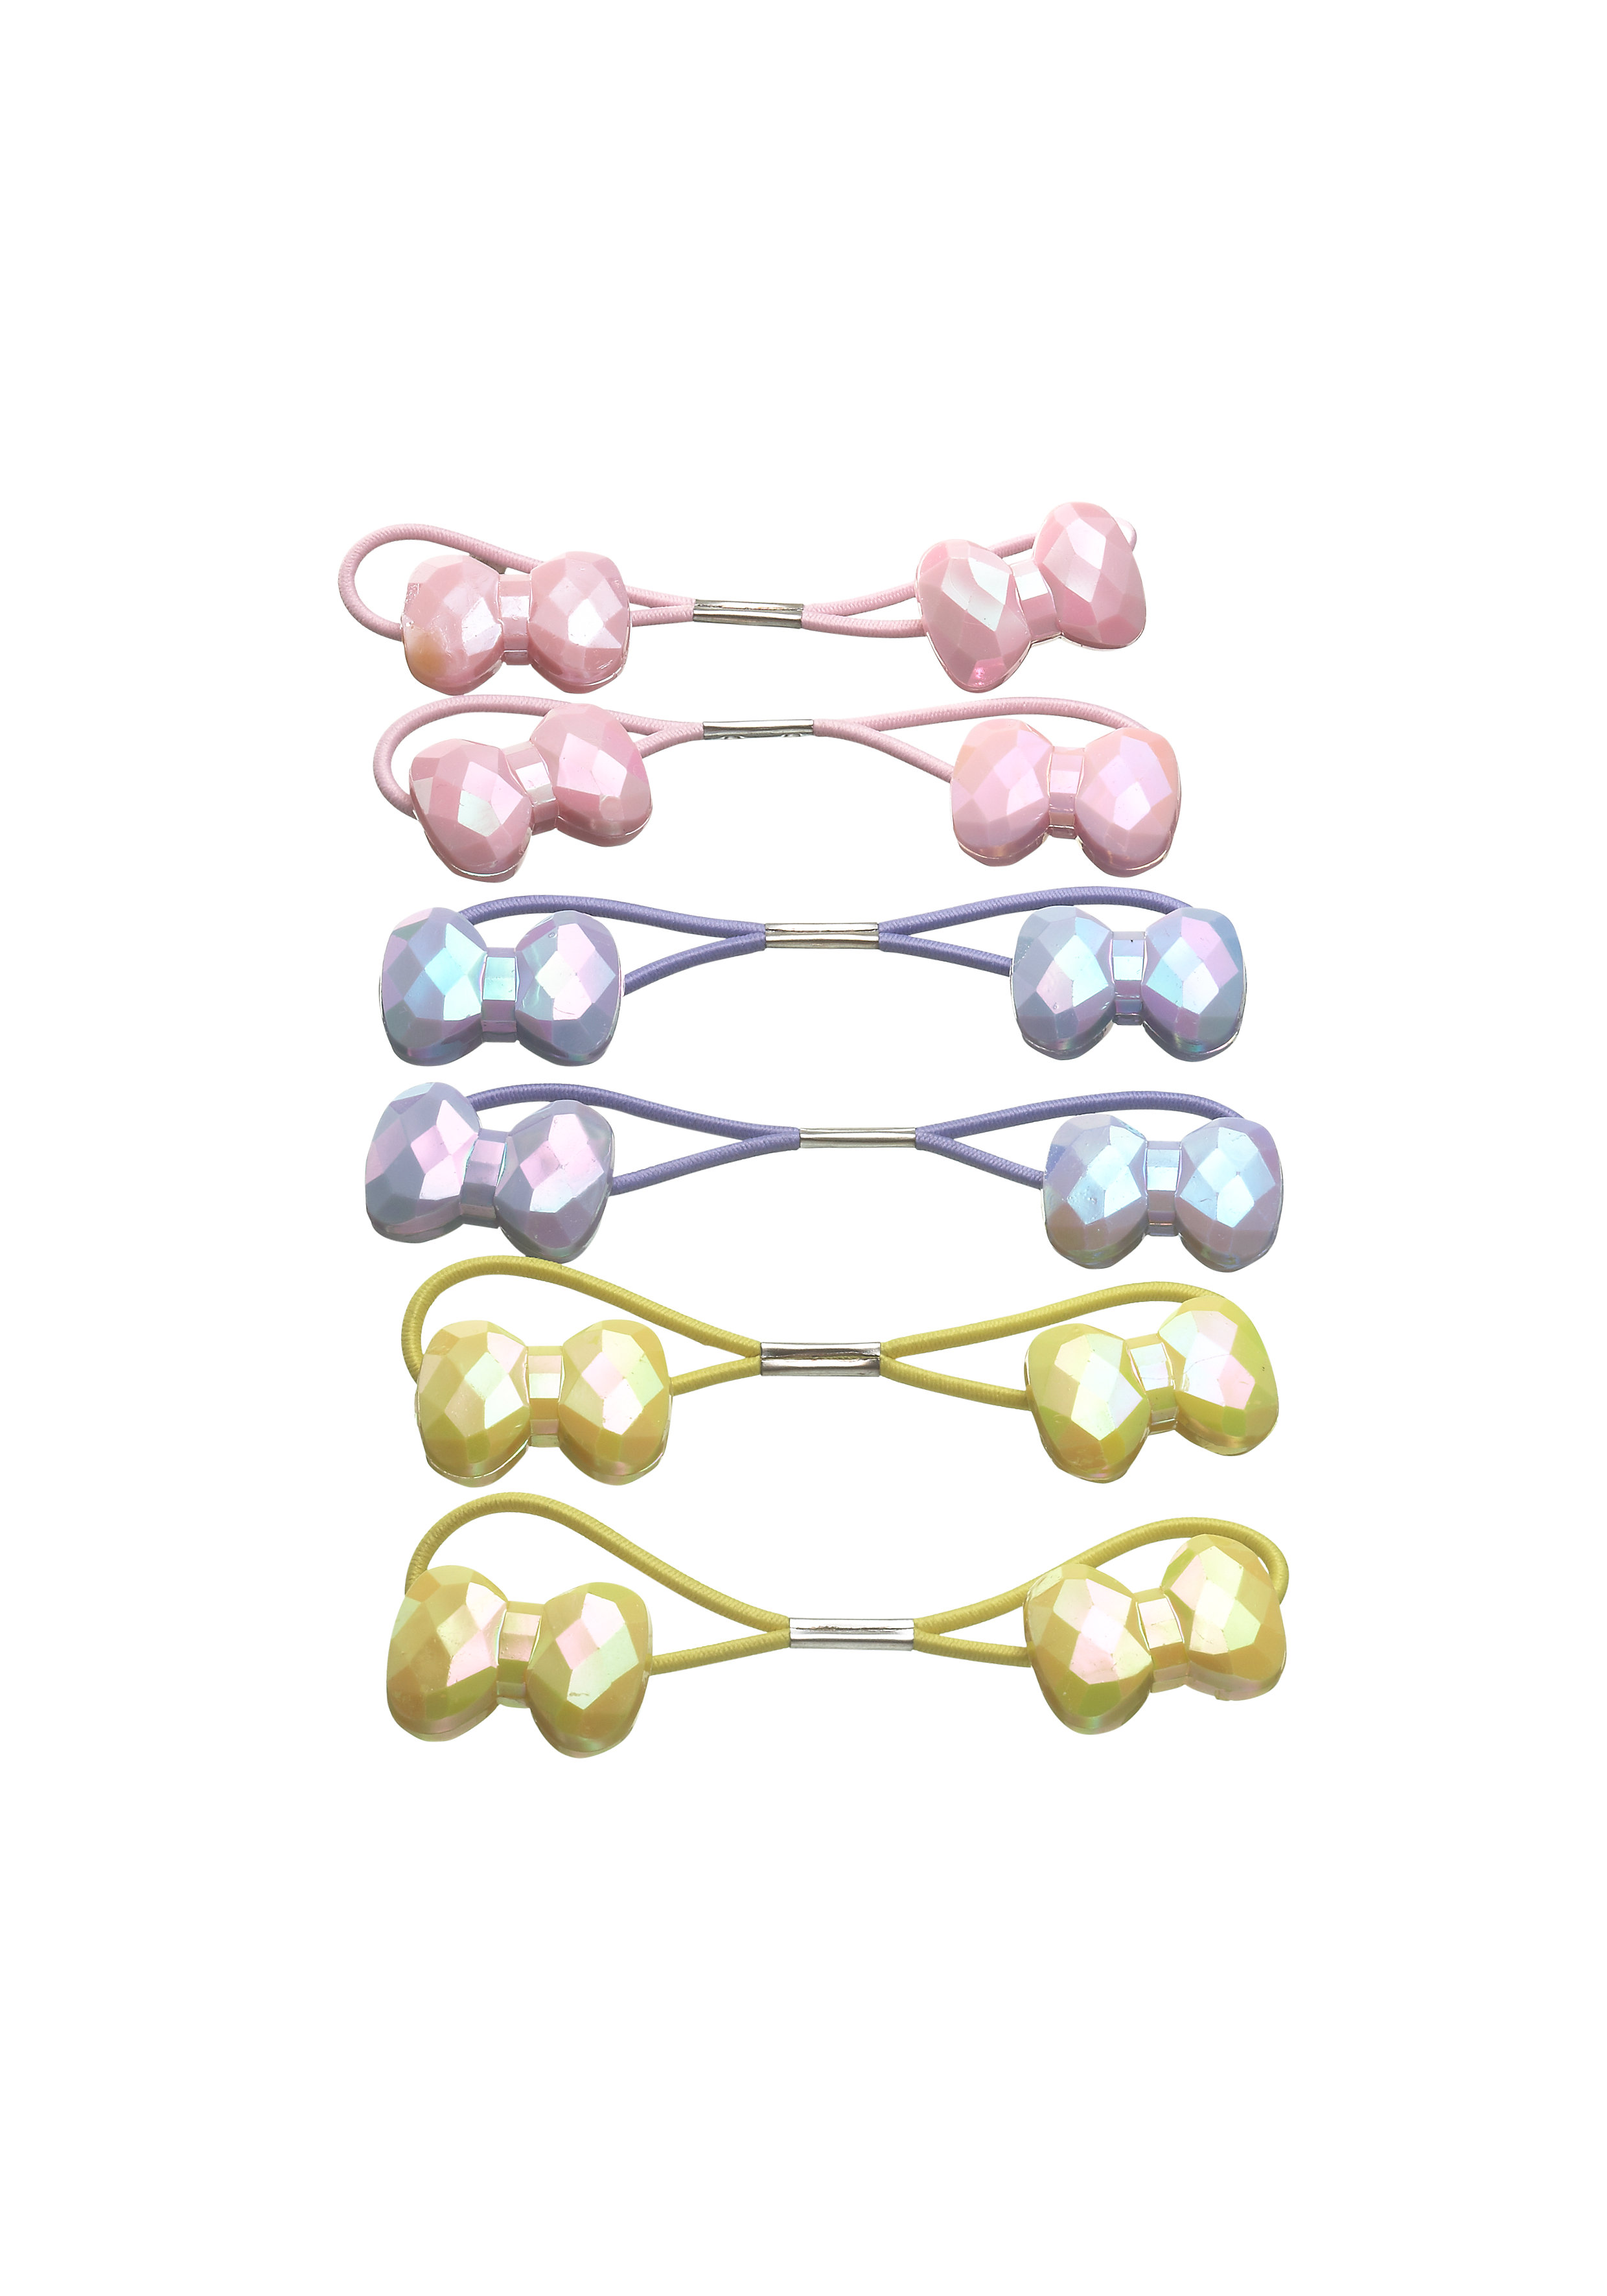 Mothercare   Girls Hair Ties - Pack Of 6 - Multicolor